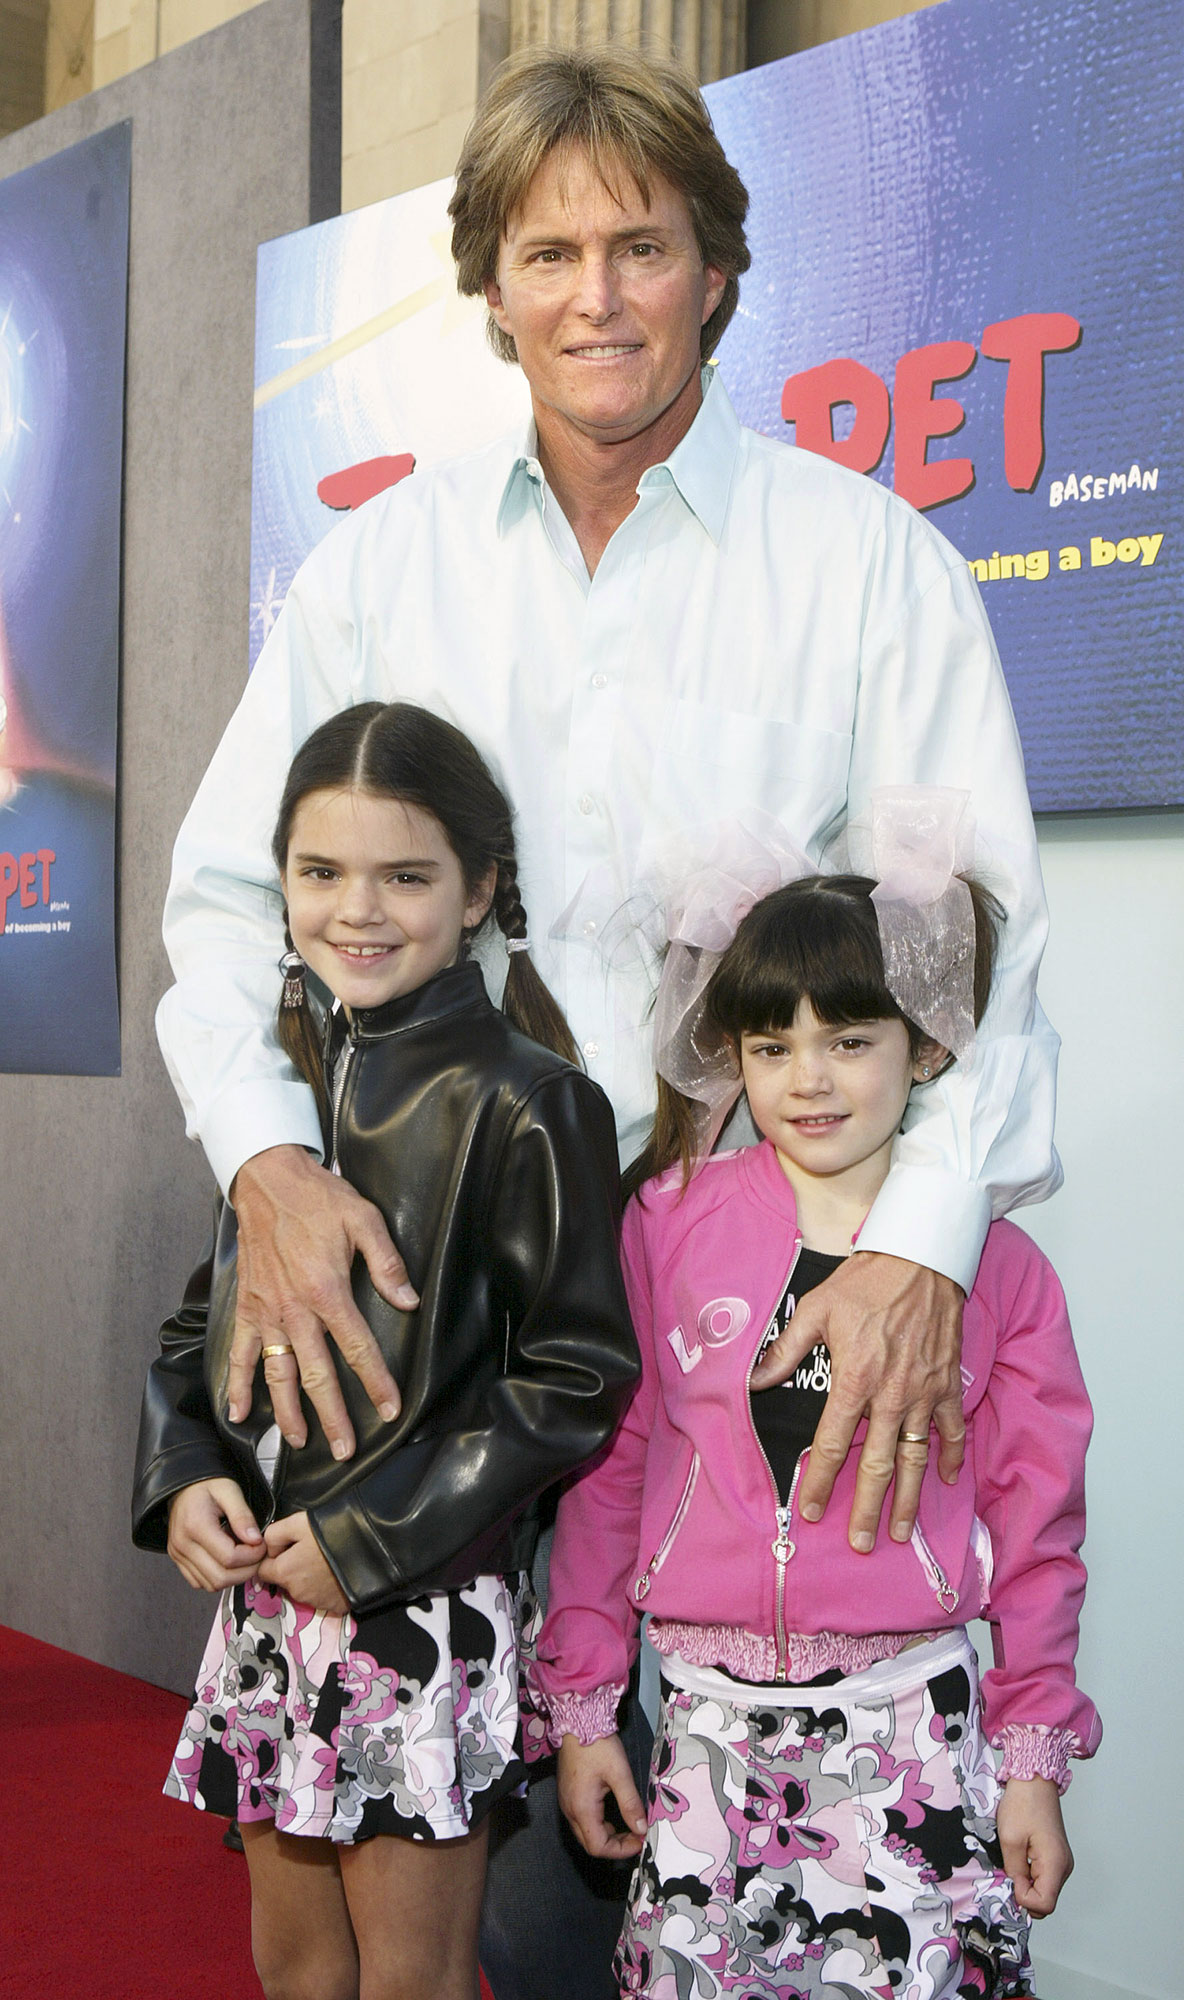 Kendall Jenner through the years - In 2004, Kendall and Kylie wore matching skirts to the Hollywood premiere of Teacher's Pet .